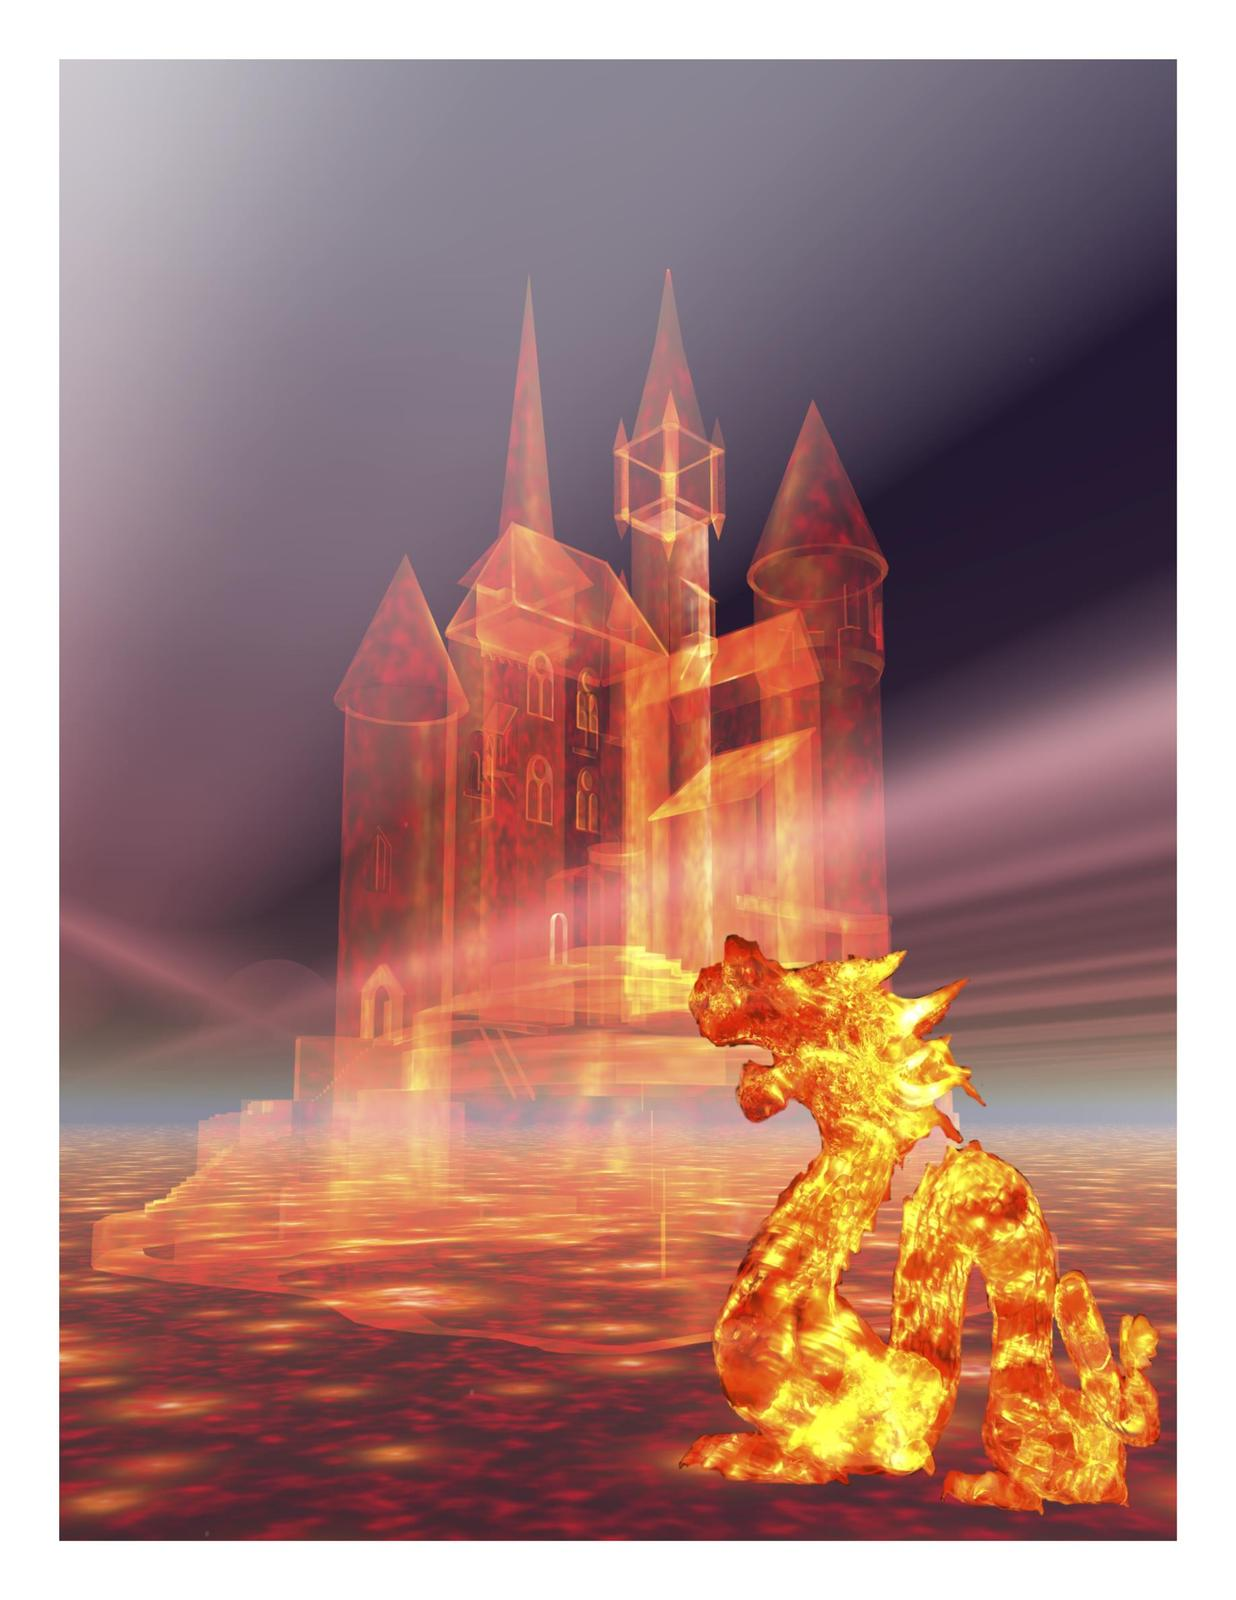 Castle in the sky and fire dragon